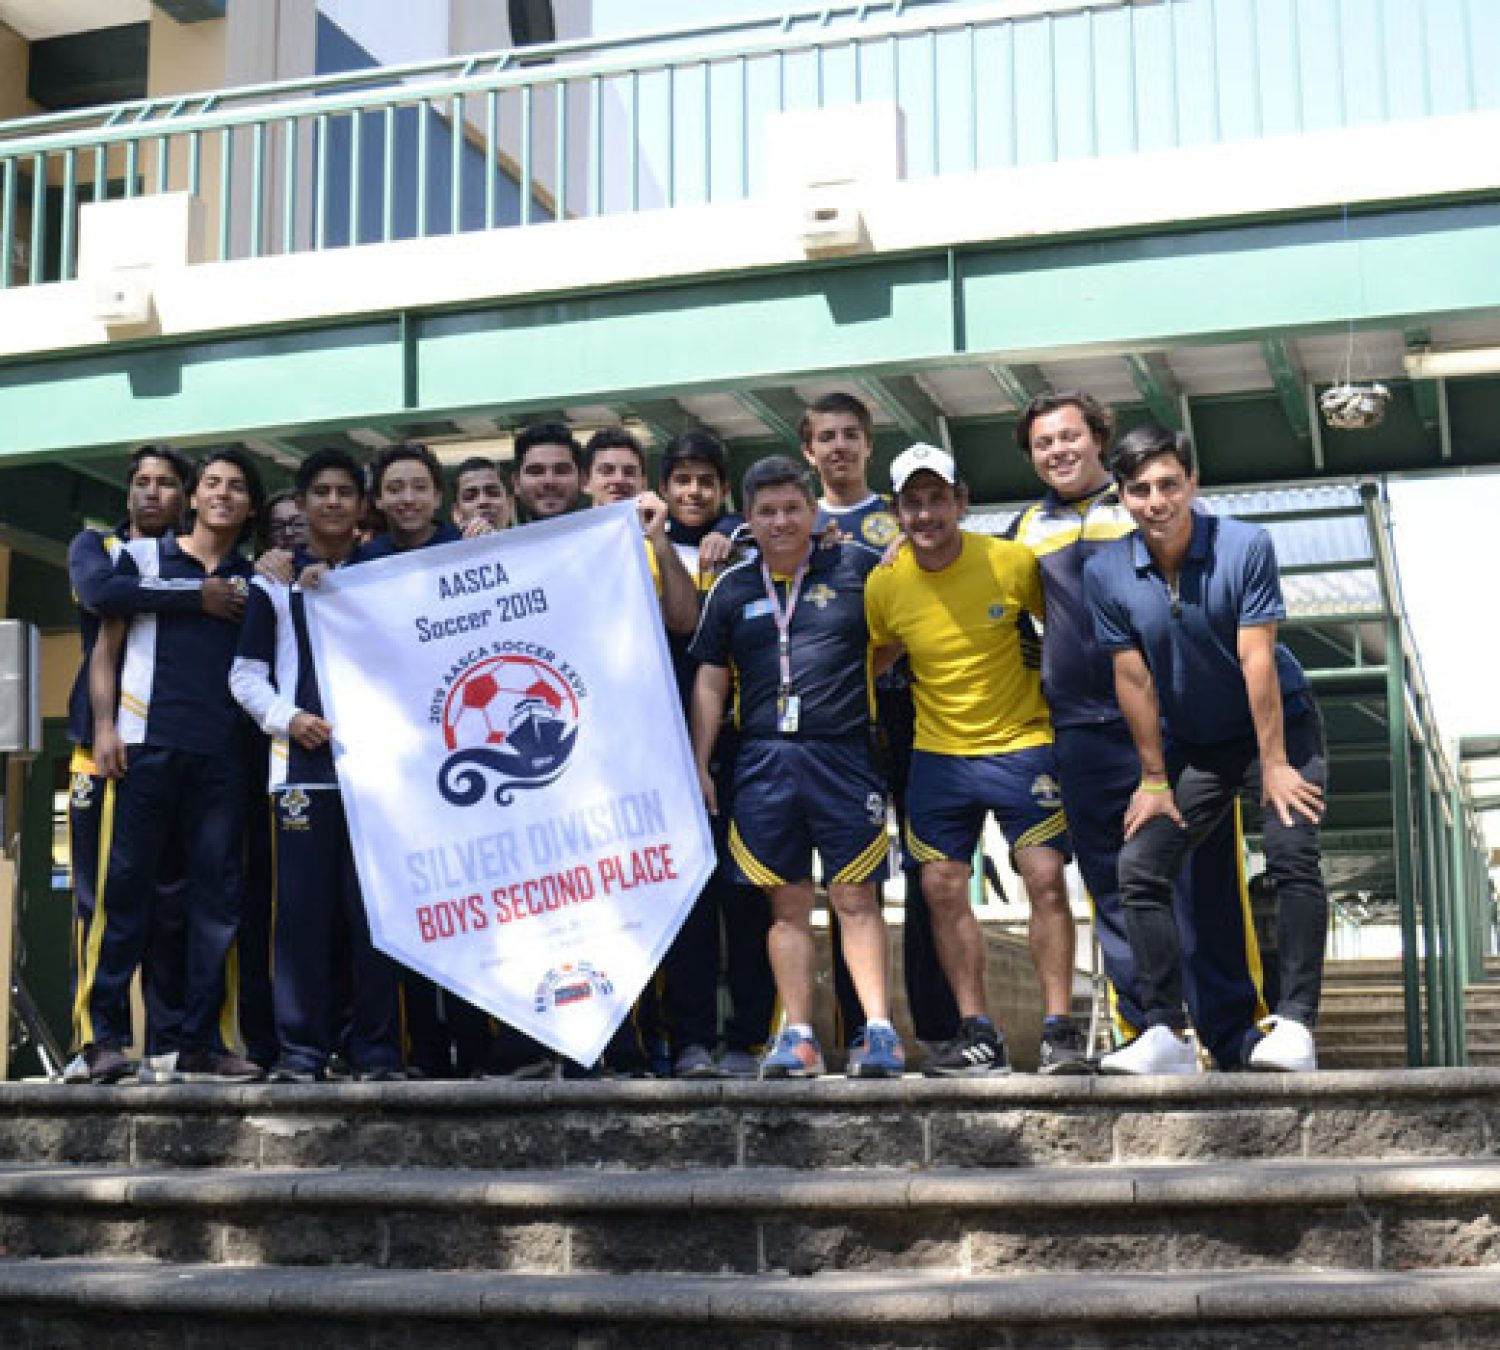 Second Place – Silver Division in AASCA Soccer 2019